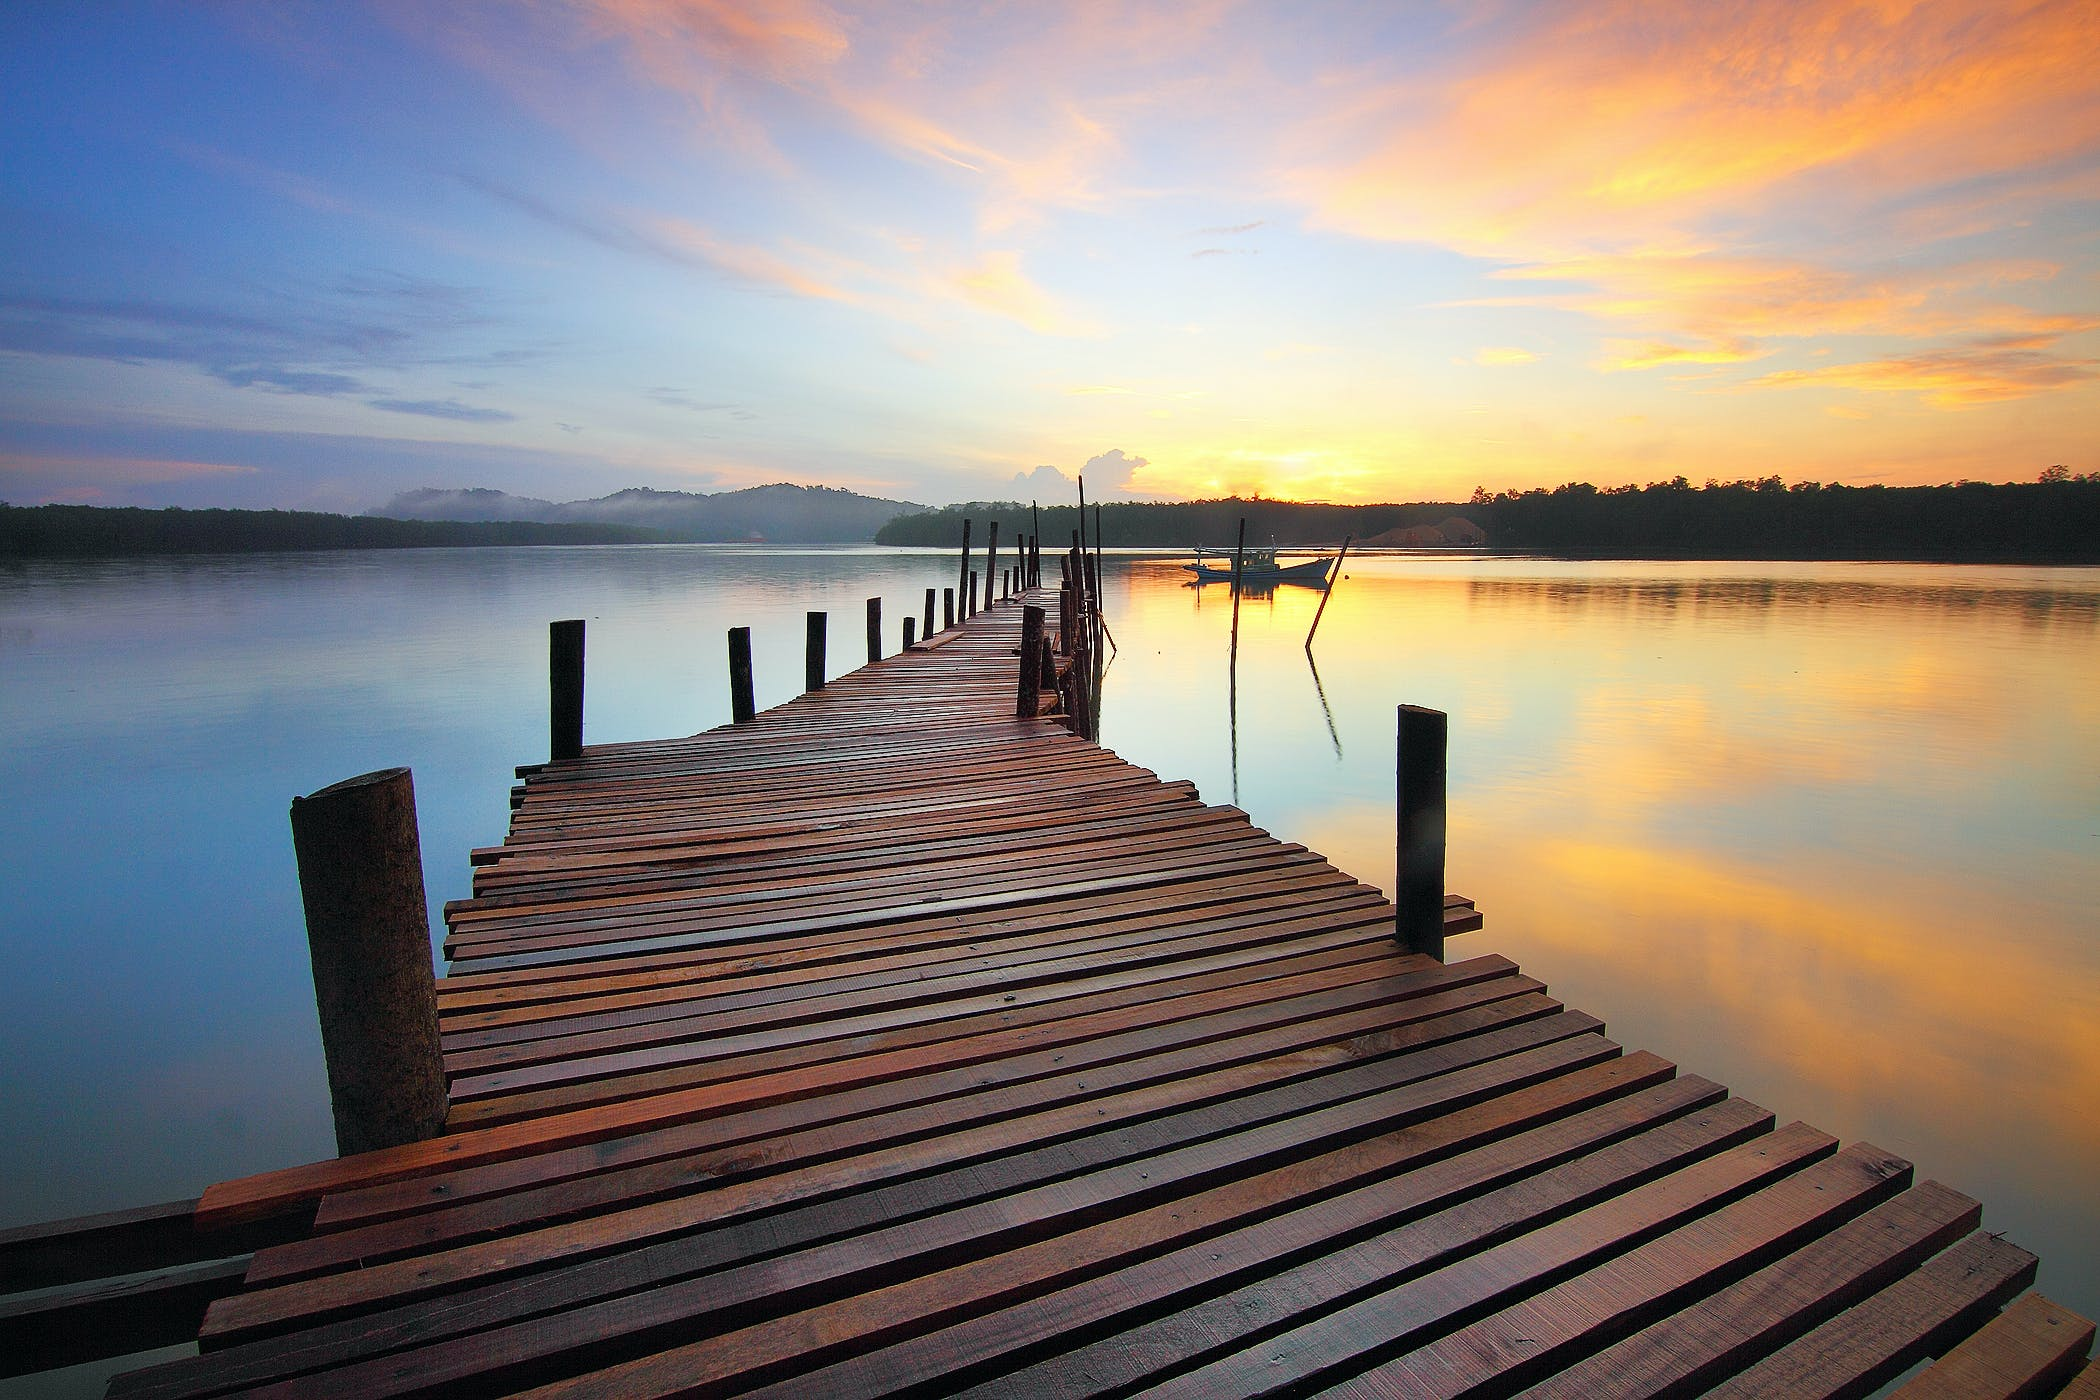 Brown Wooden Dock on Calm Body of Water Surrounded by Silhouette of Trees during Sunset